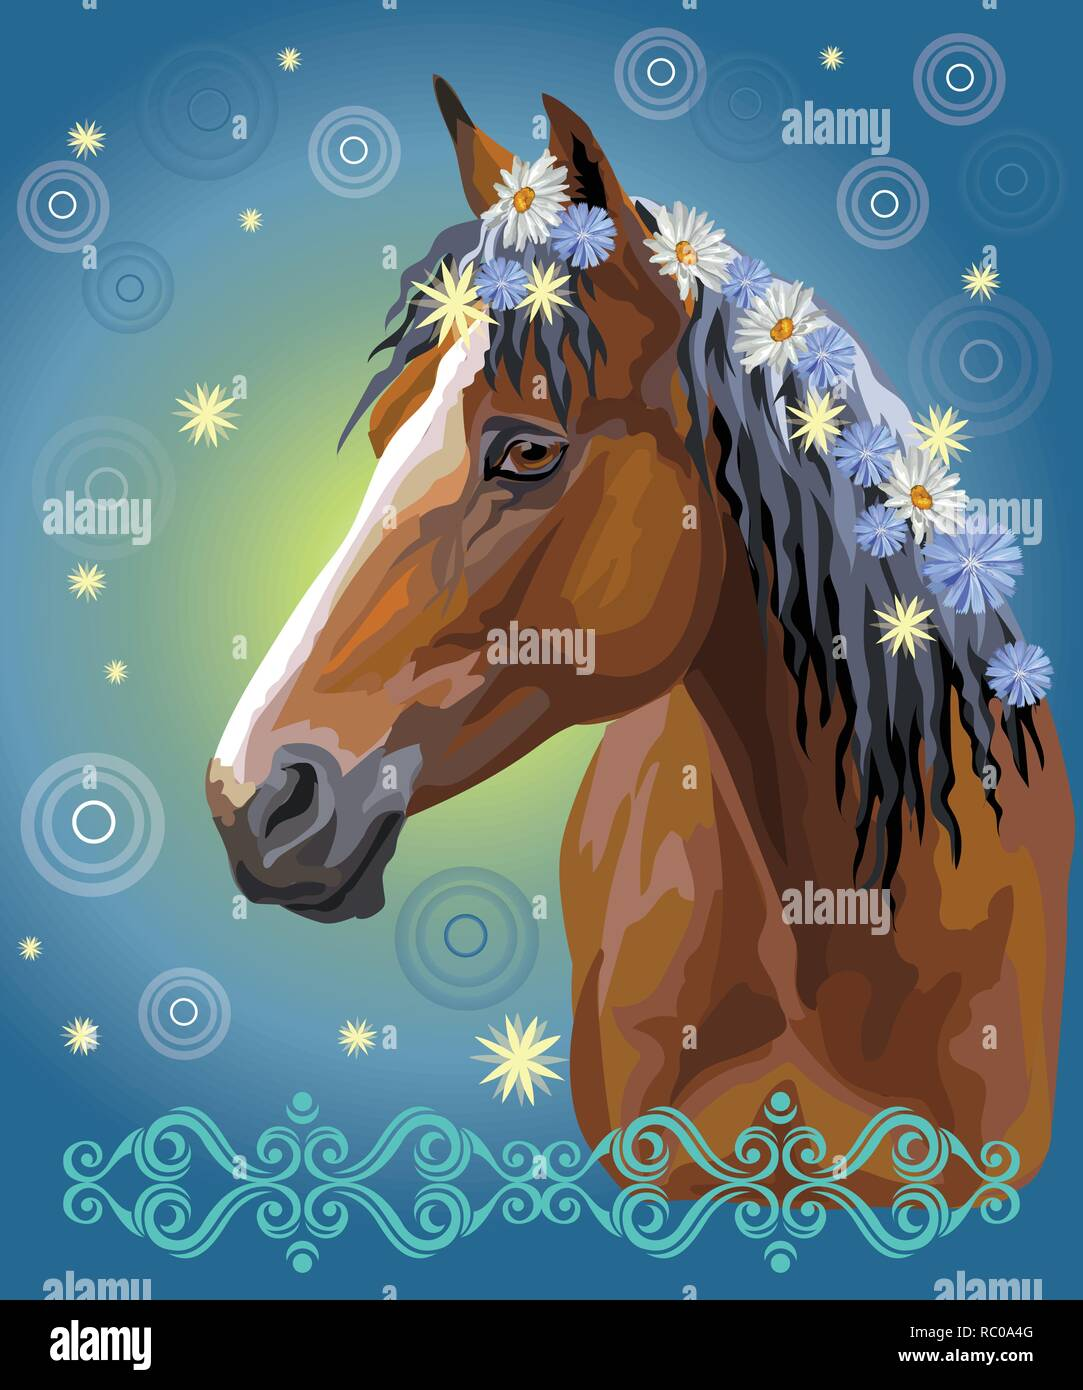 Vector colorful illustration. Portrait of bay horse with different flowers in mane isolated on blue gradient background with decorative ornament and c - Stock Vector